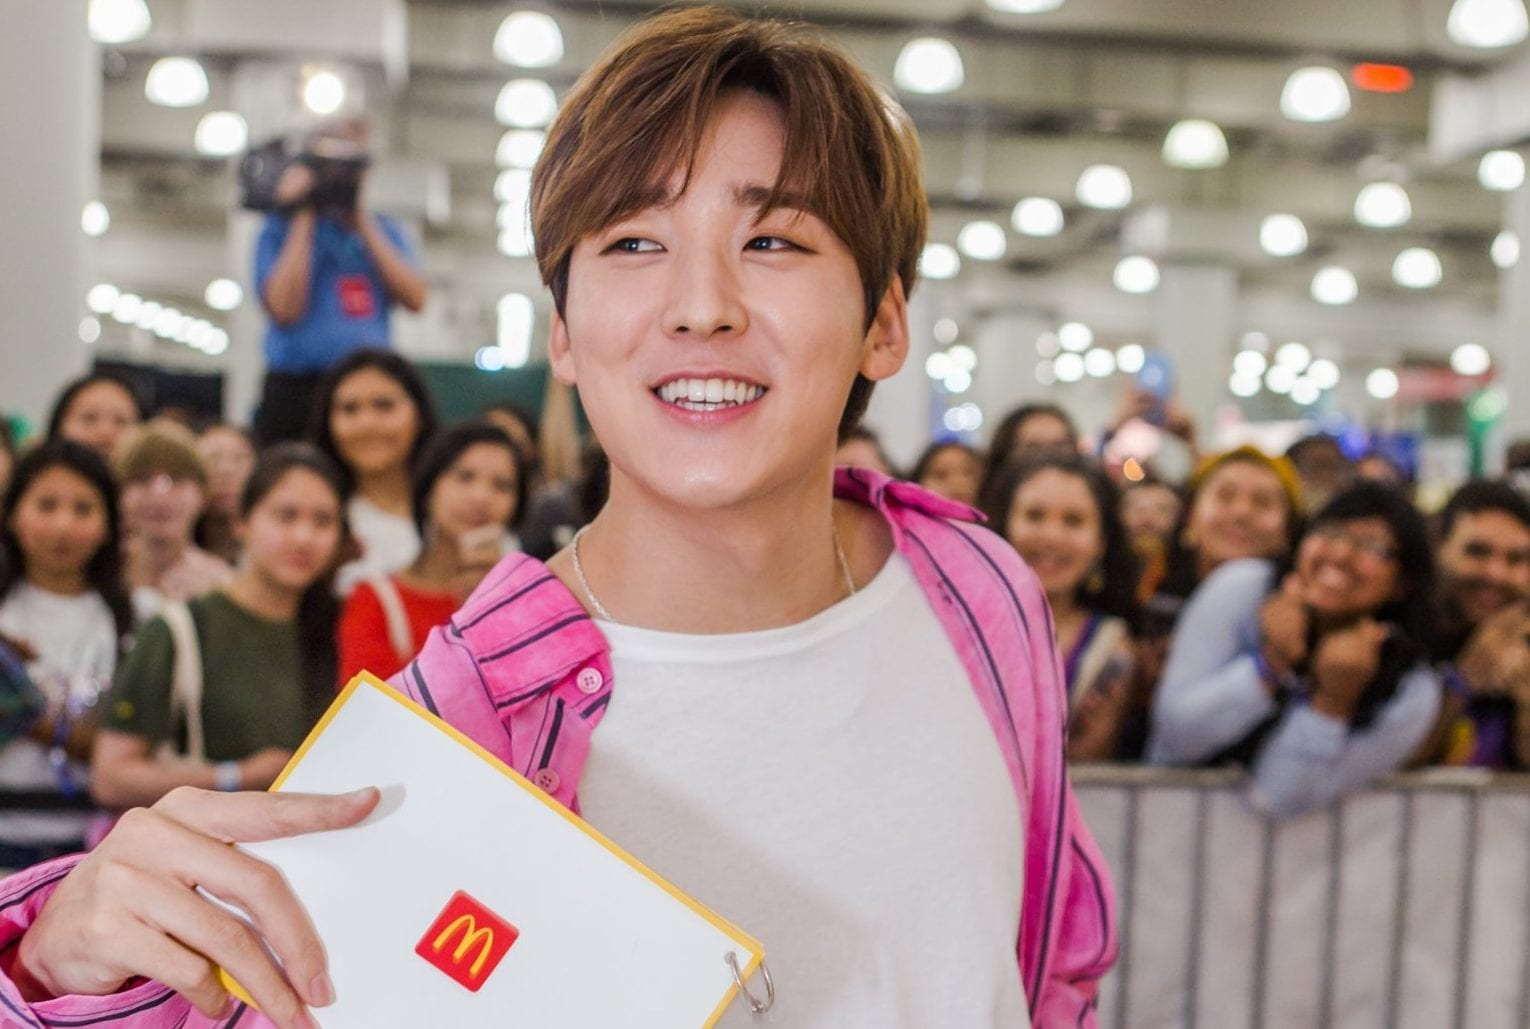 Kevin Woo Surprises Fans At McDonald's Booth During KCON NY 2019